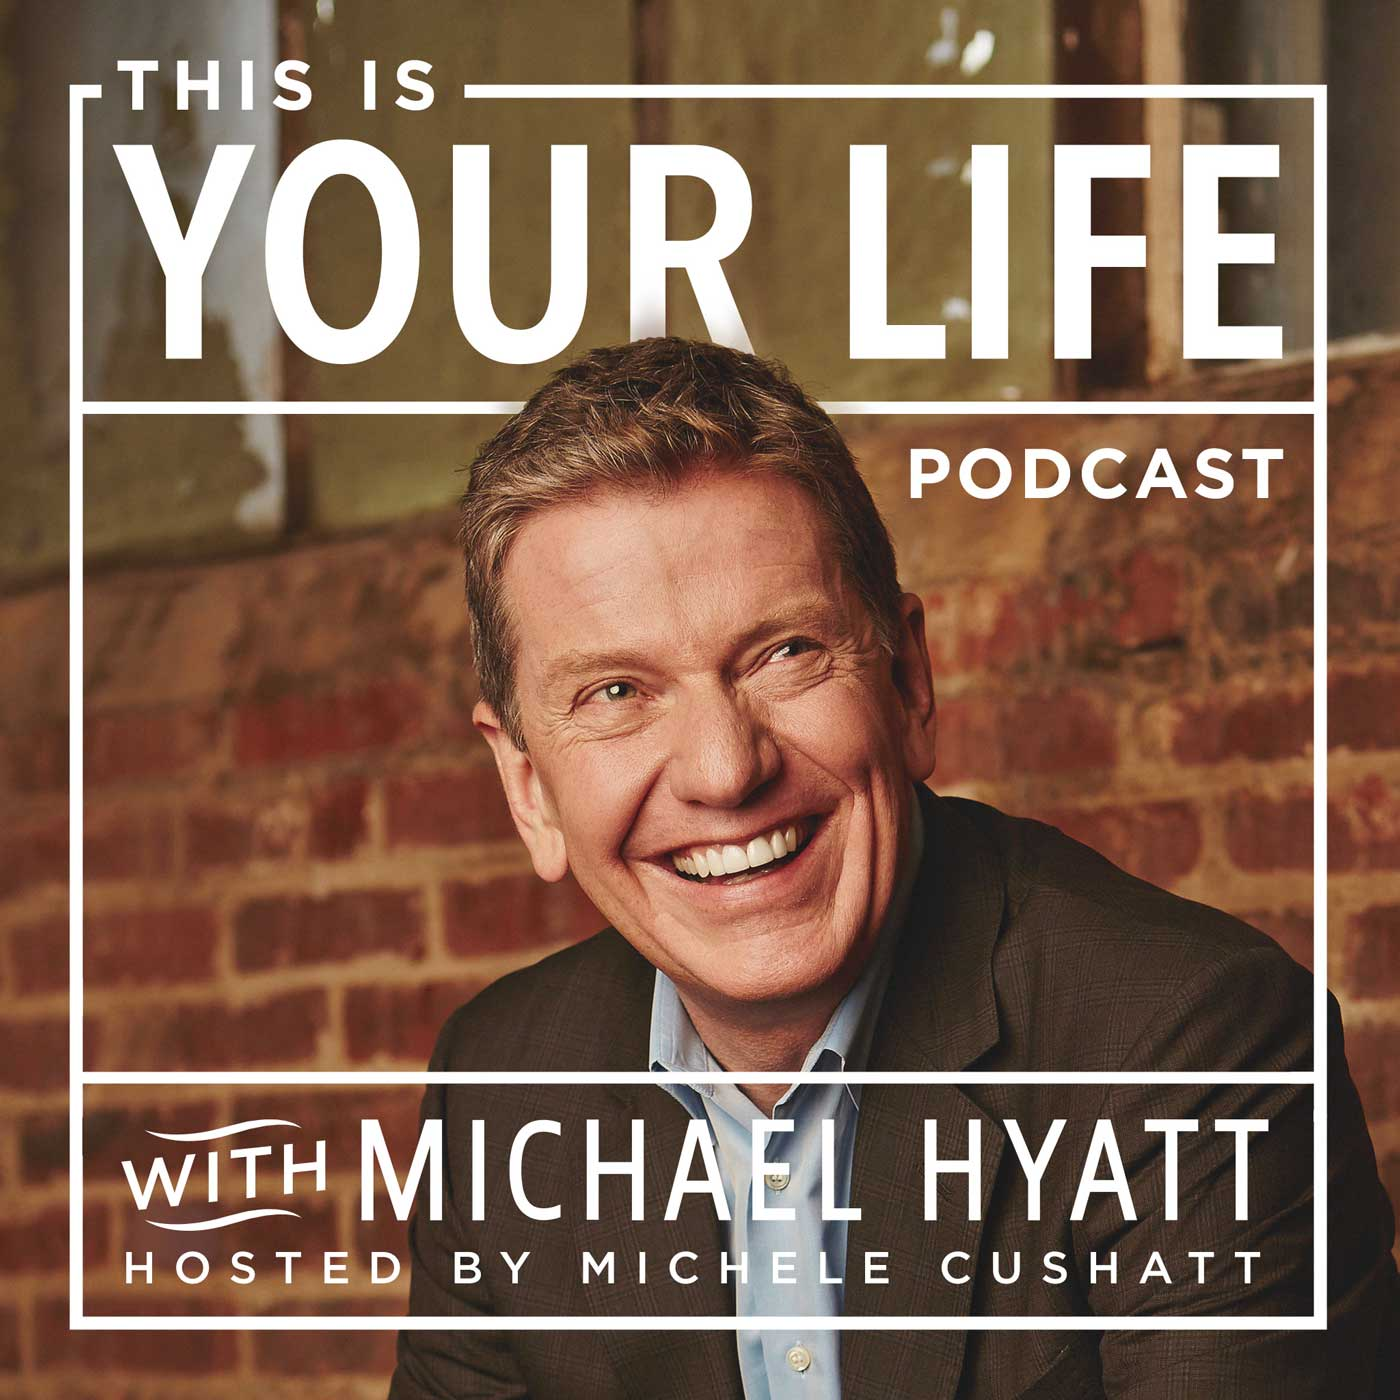 This is Your Life podcast bisnis